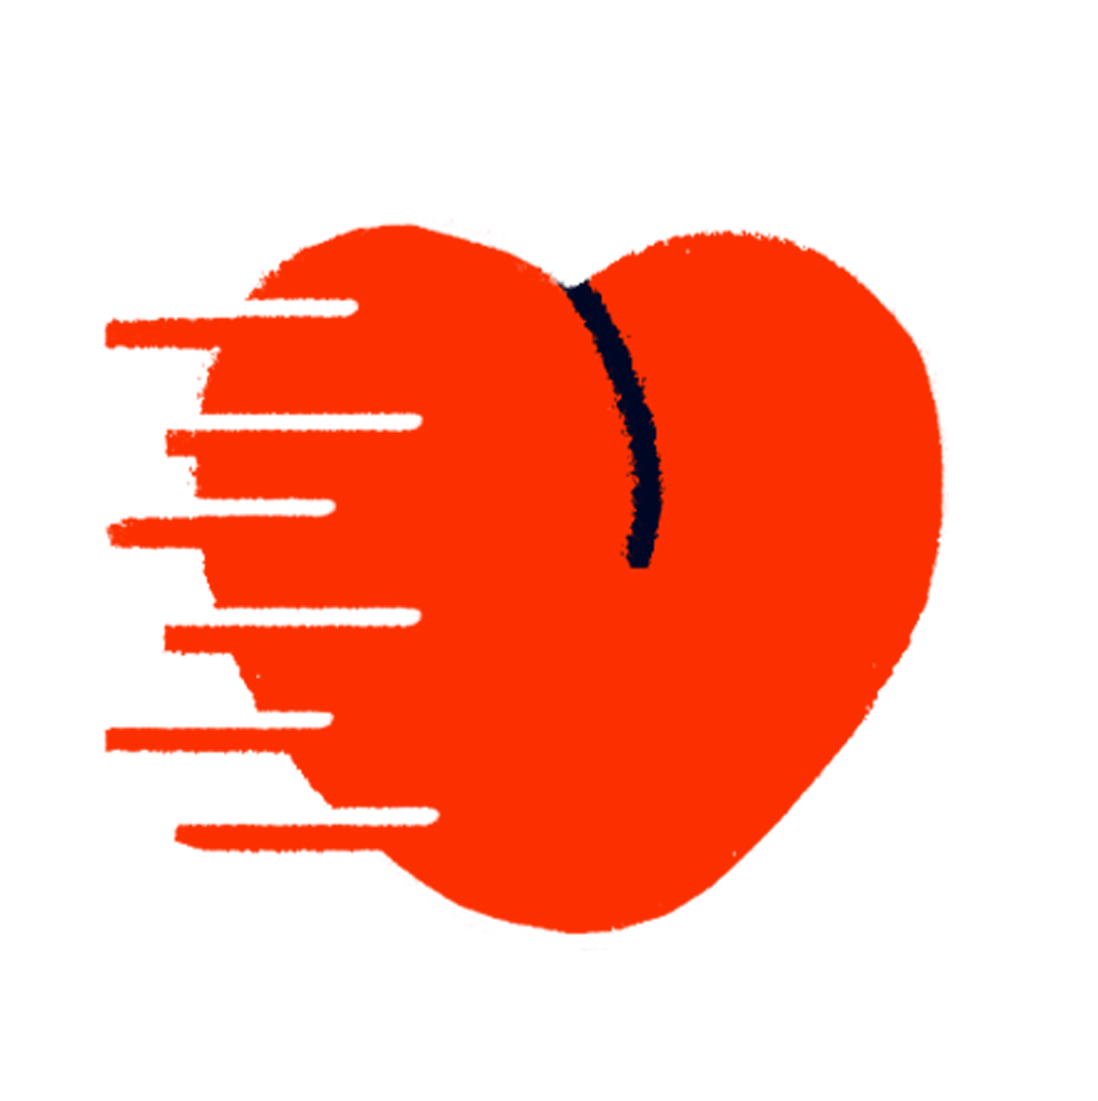 A racing heart denoting the love sent to customers along with MyMuse products